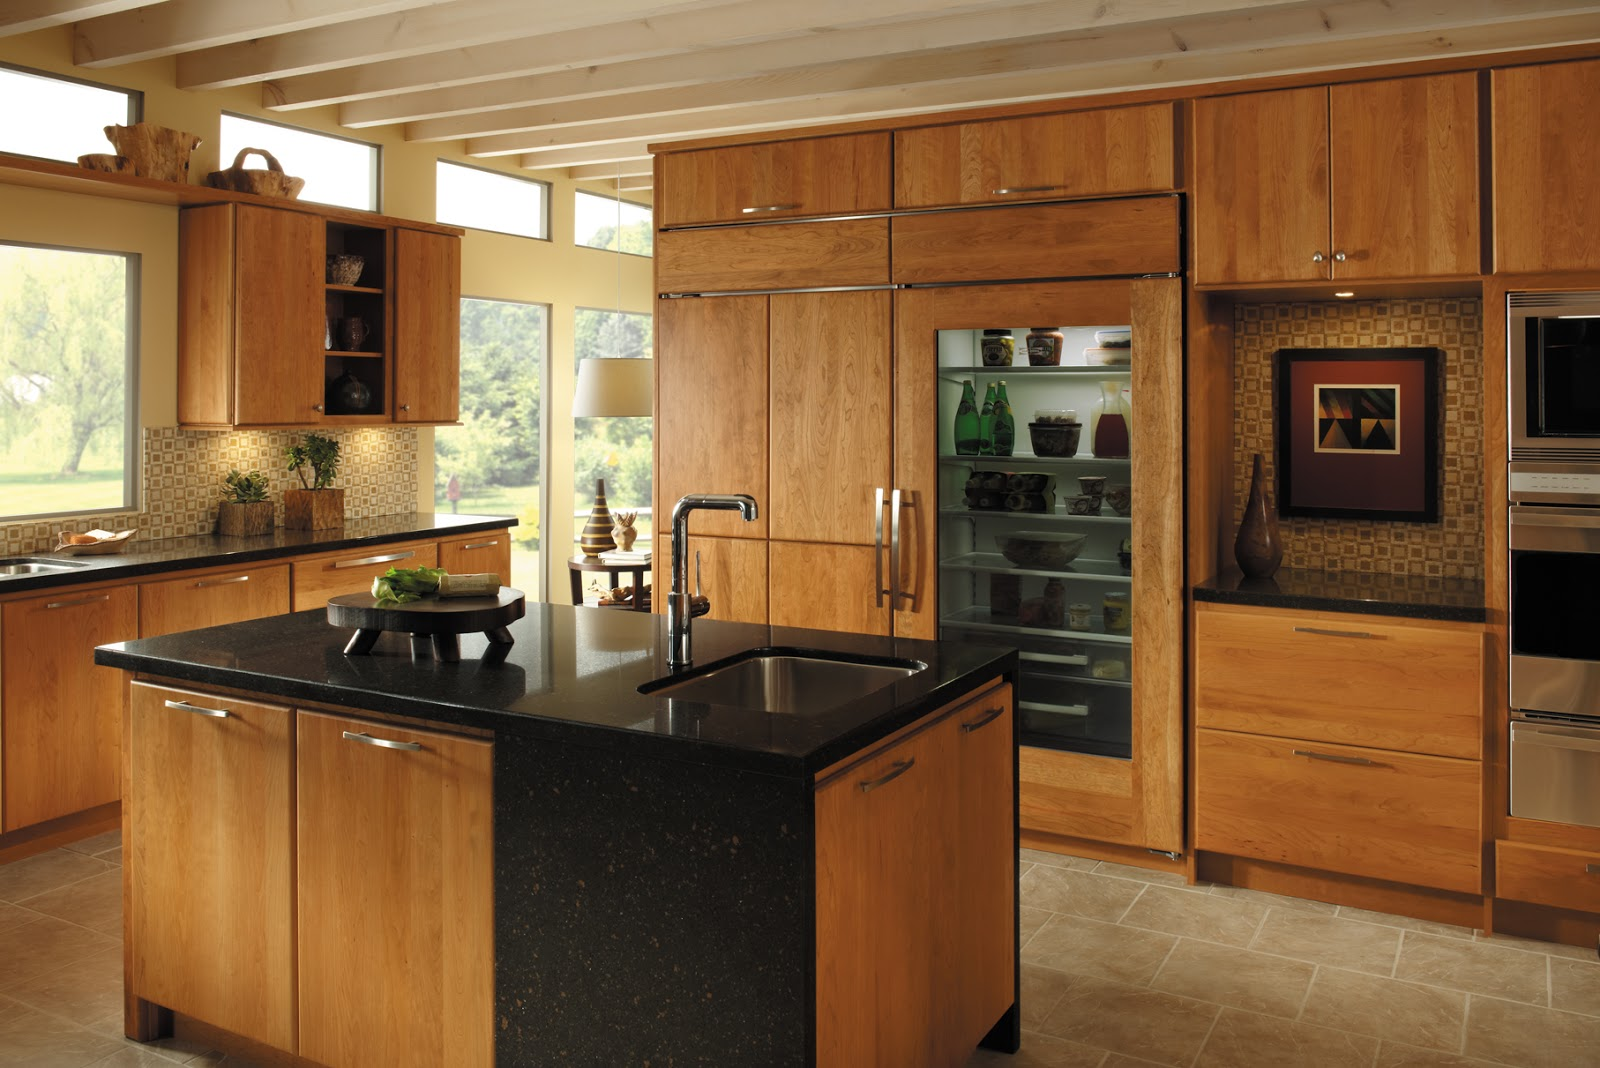 Kitchen Cabinets York Pa Starmark Monroe Kitchen Cabinets